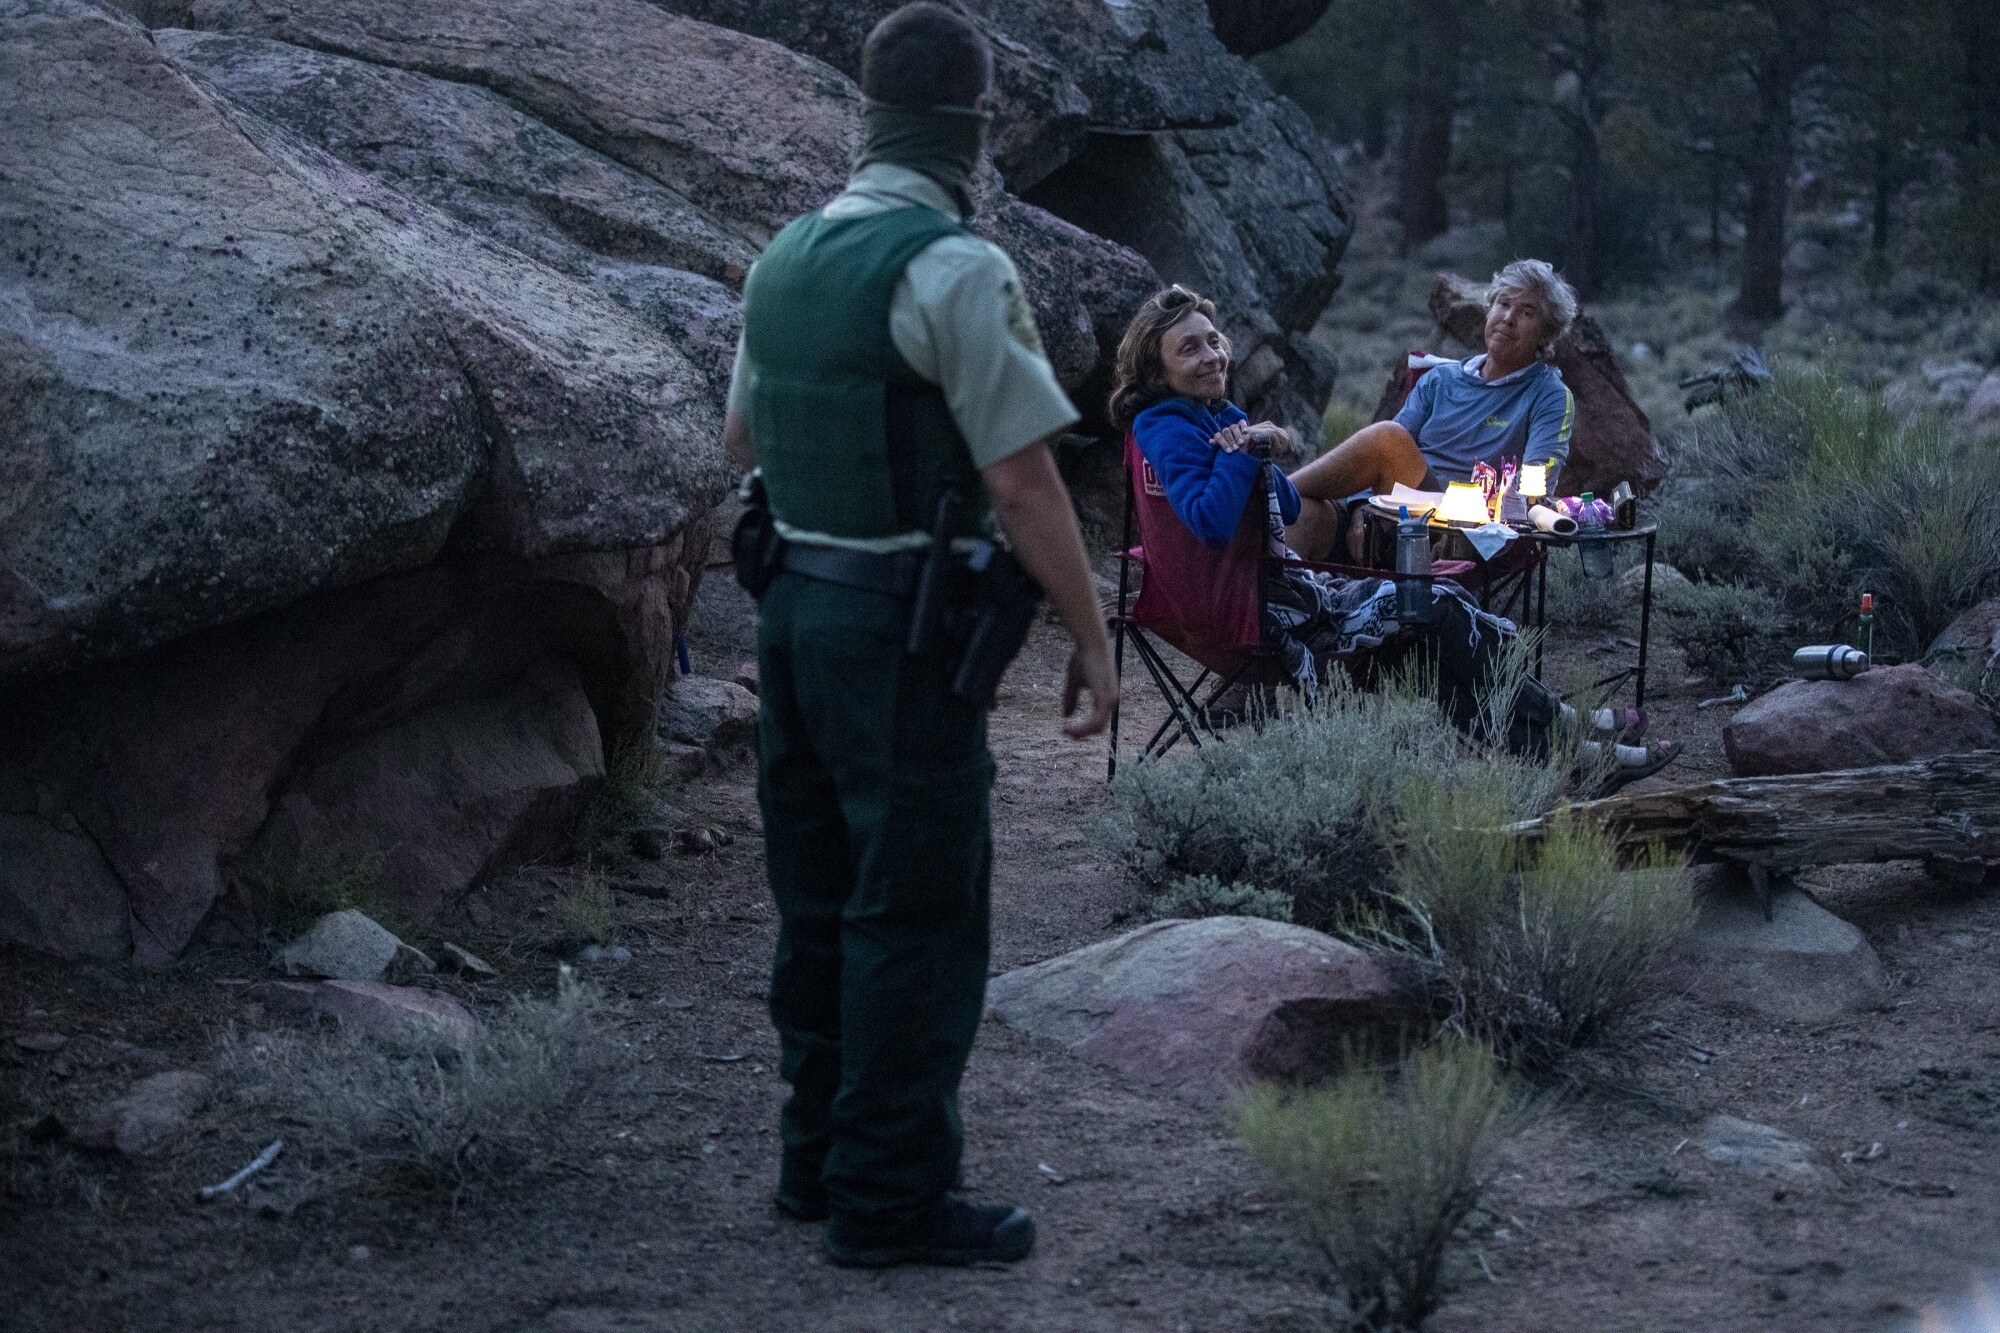 An armed ranger speaks to a couple seated at a small table in a campsite amid granite boulders and brush